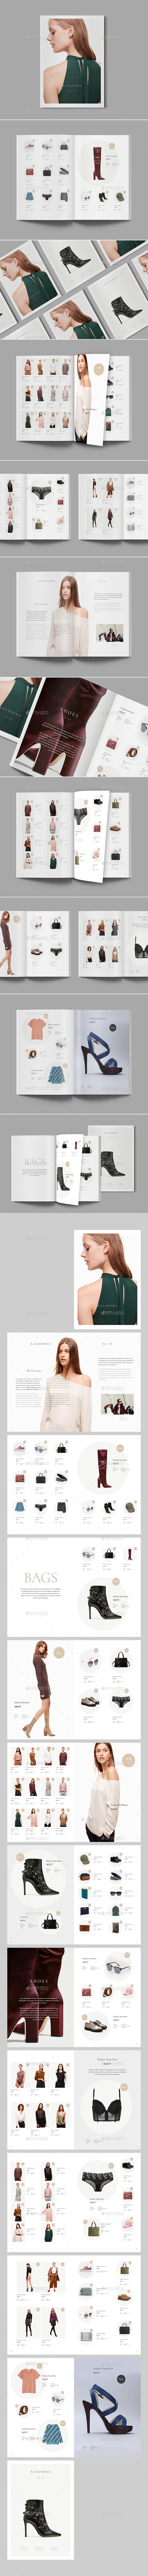 GraphicRiver Kasandra Catalog Template 21088707